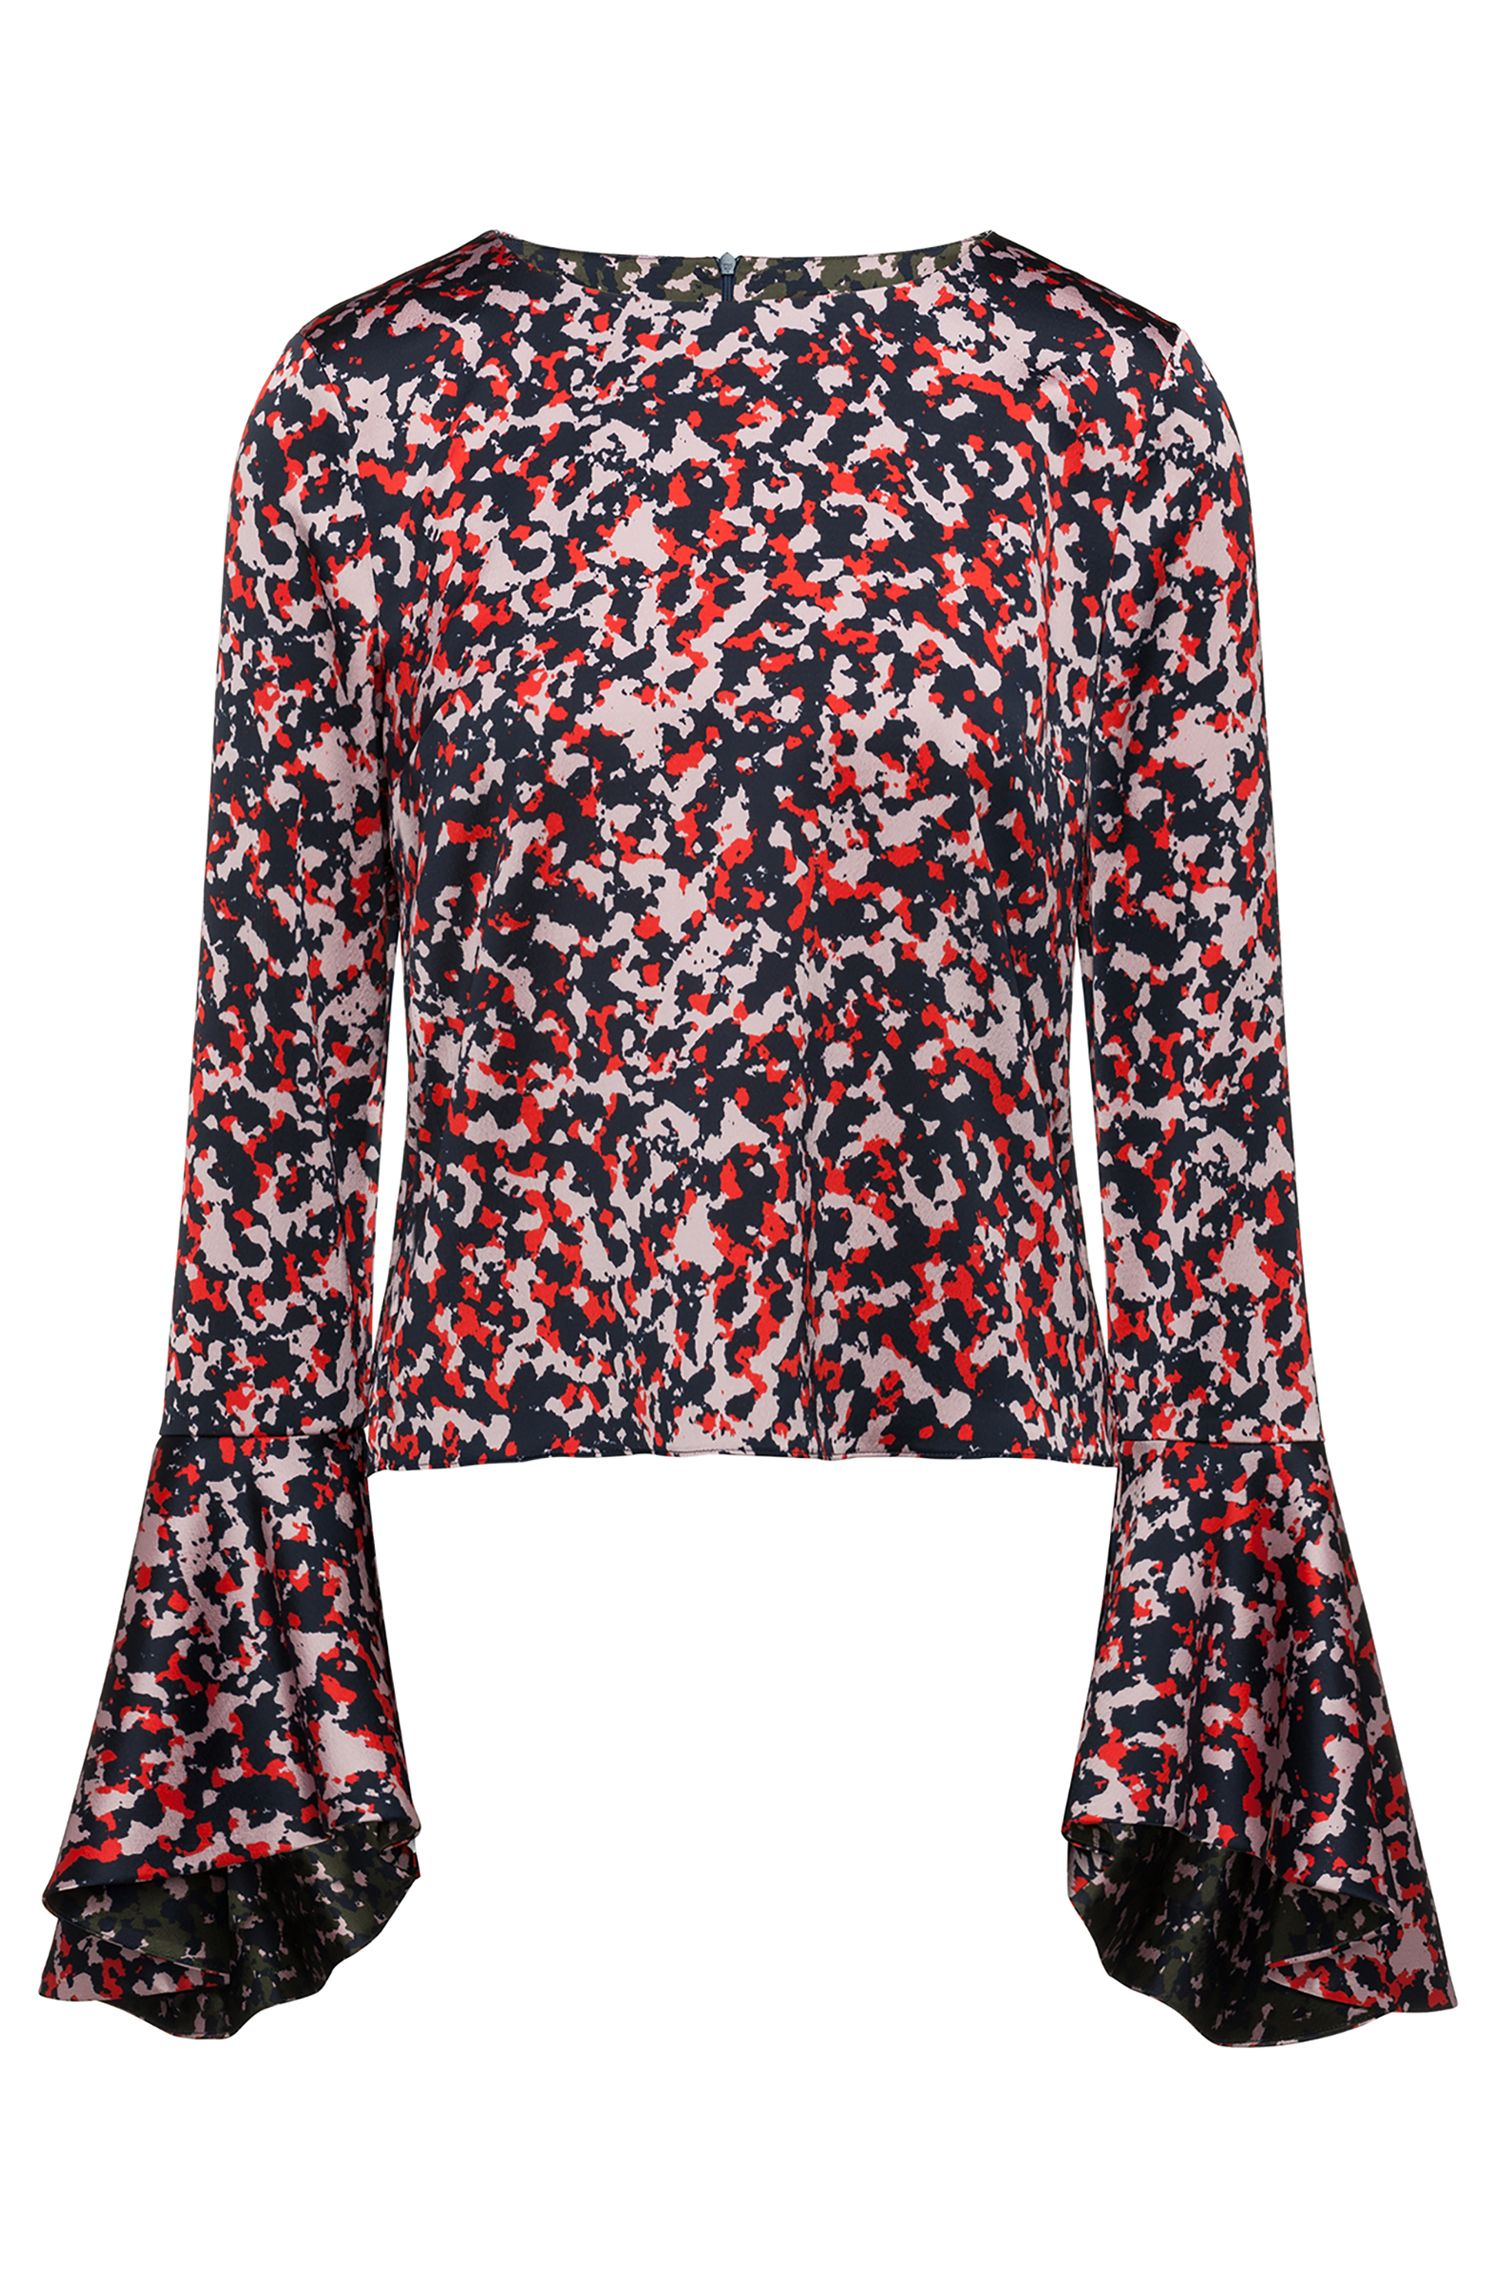 Camouflage-print top with volant sleeves, Patterned